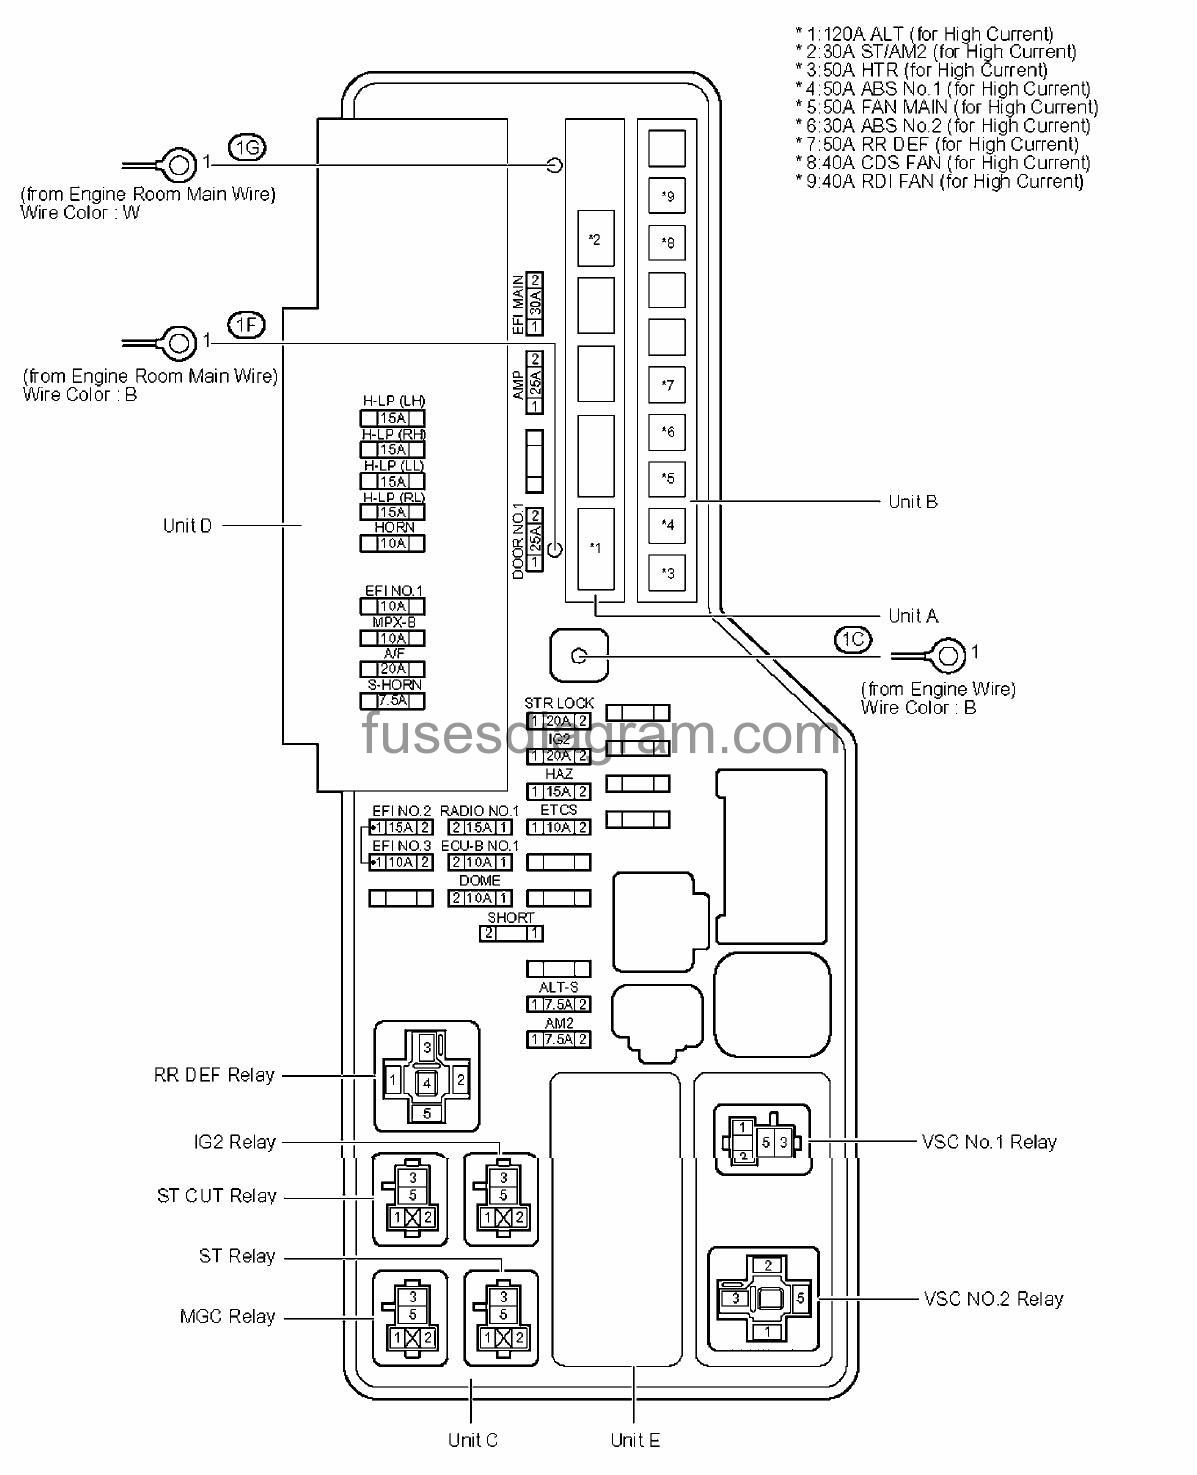 2007 Tahoe Fuse Diagram Free Wiring For You Chevy Parts 2002 Chrysler Sebring Library Rh 99 Skriptoase De Ltz Box